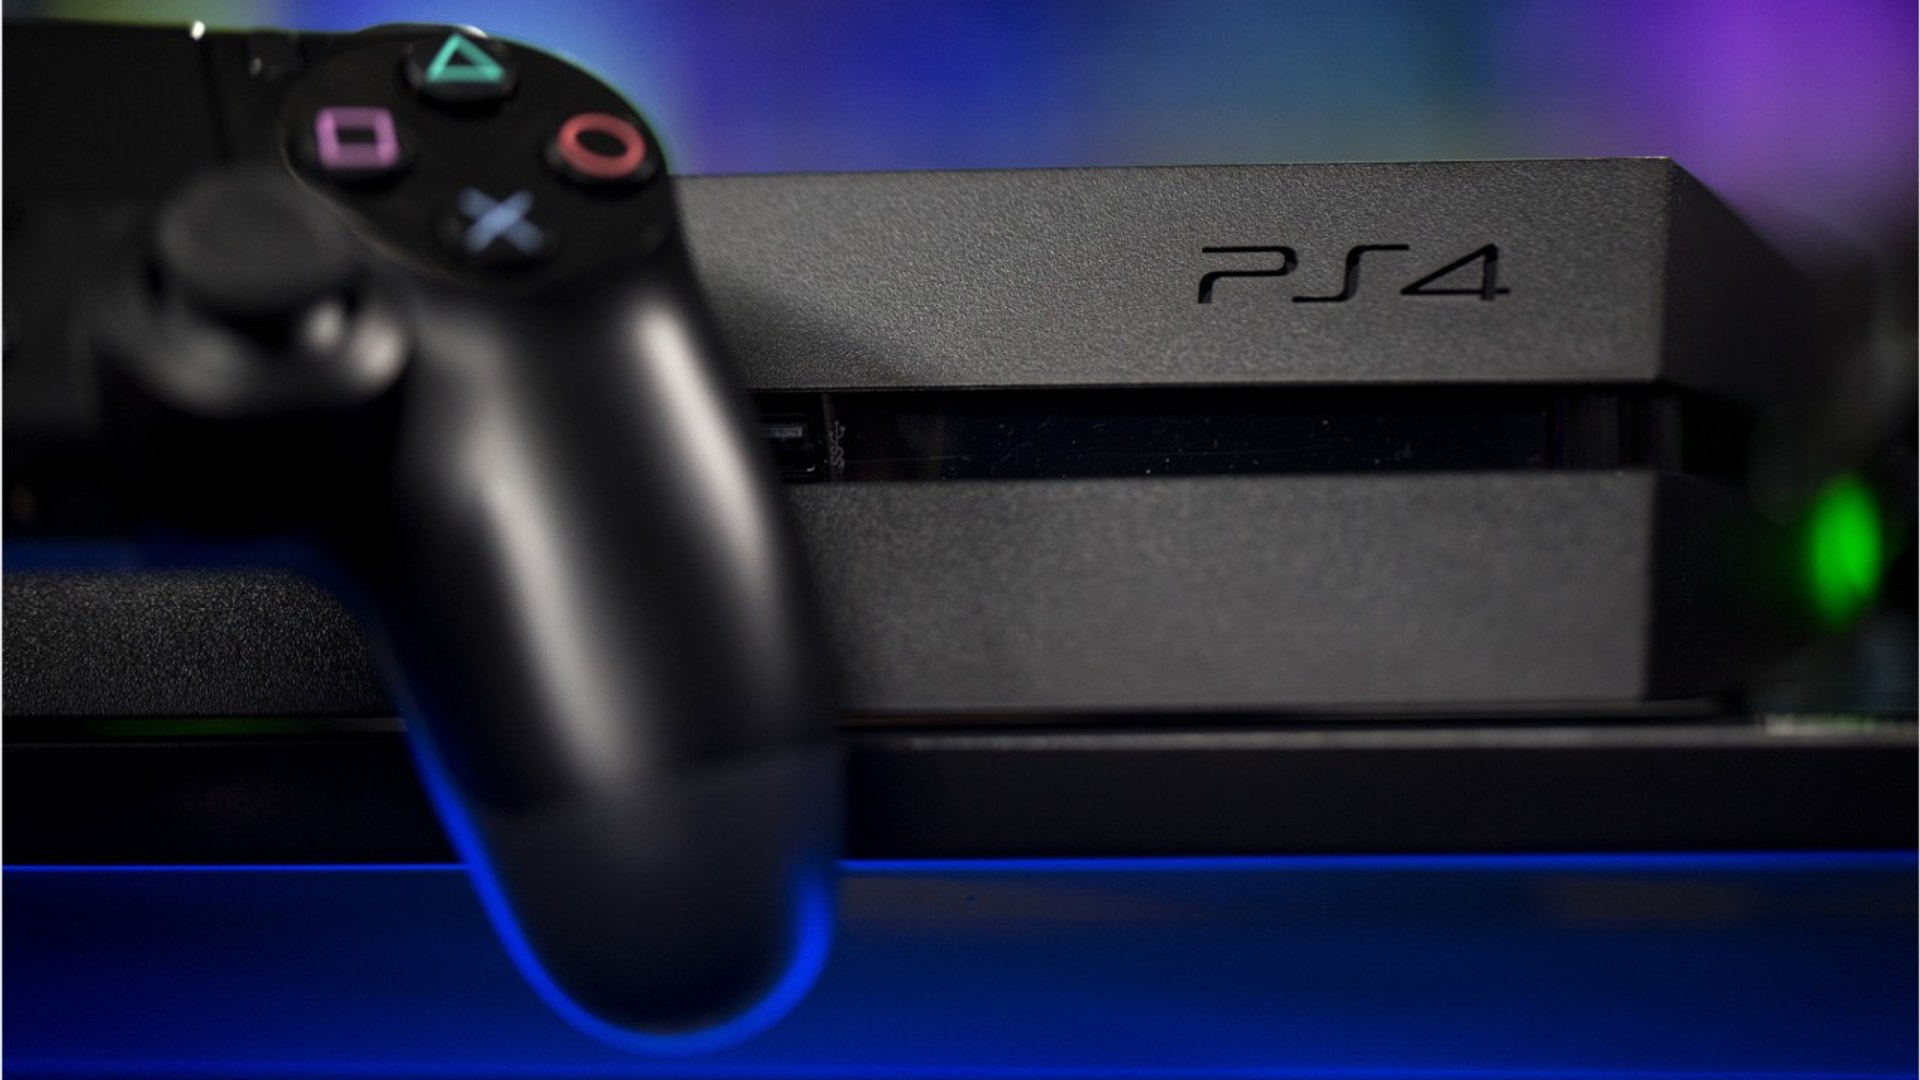 Sony's PlayStation 4 Is The Most Popular Gaming Console By A Long Shot